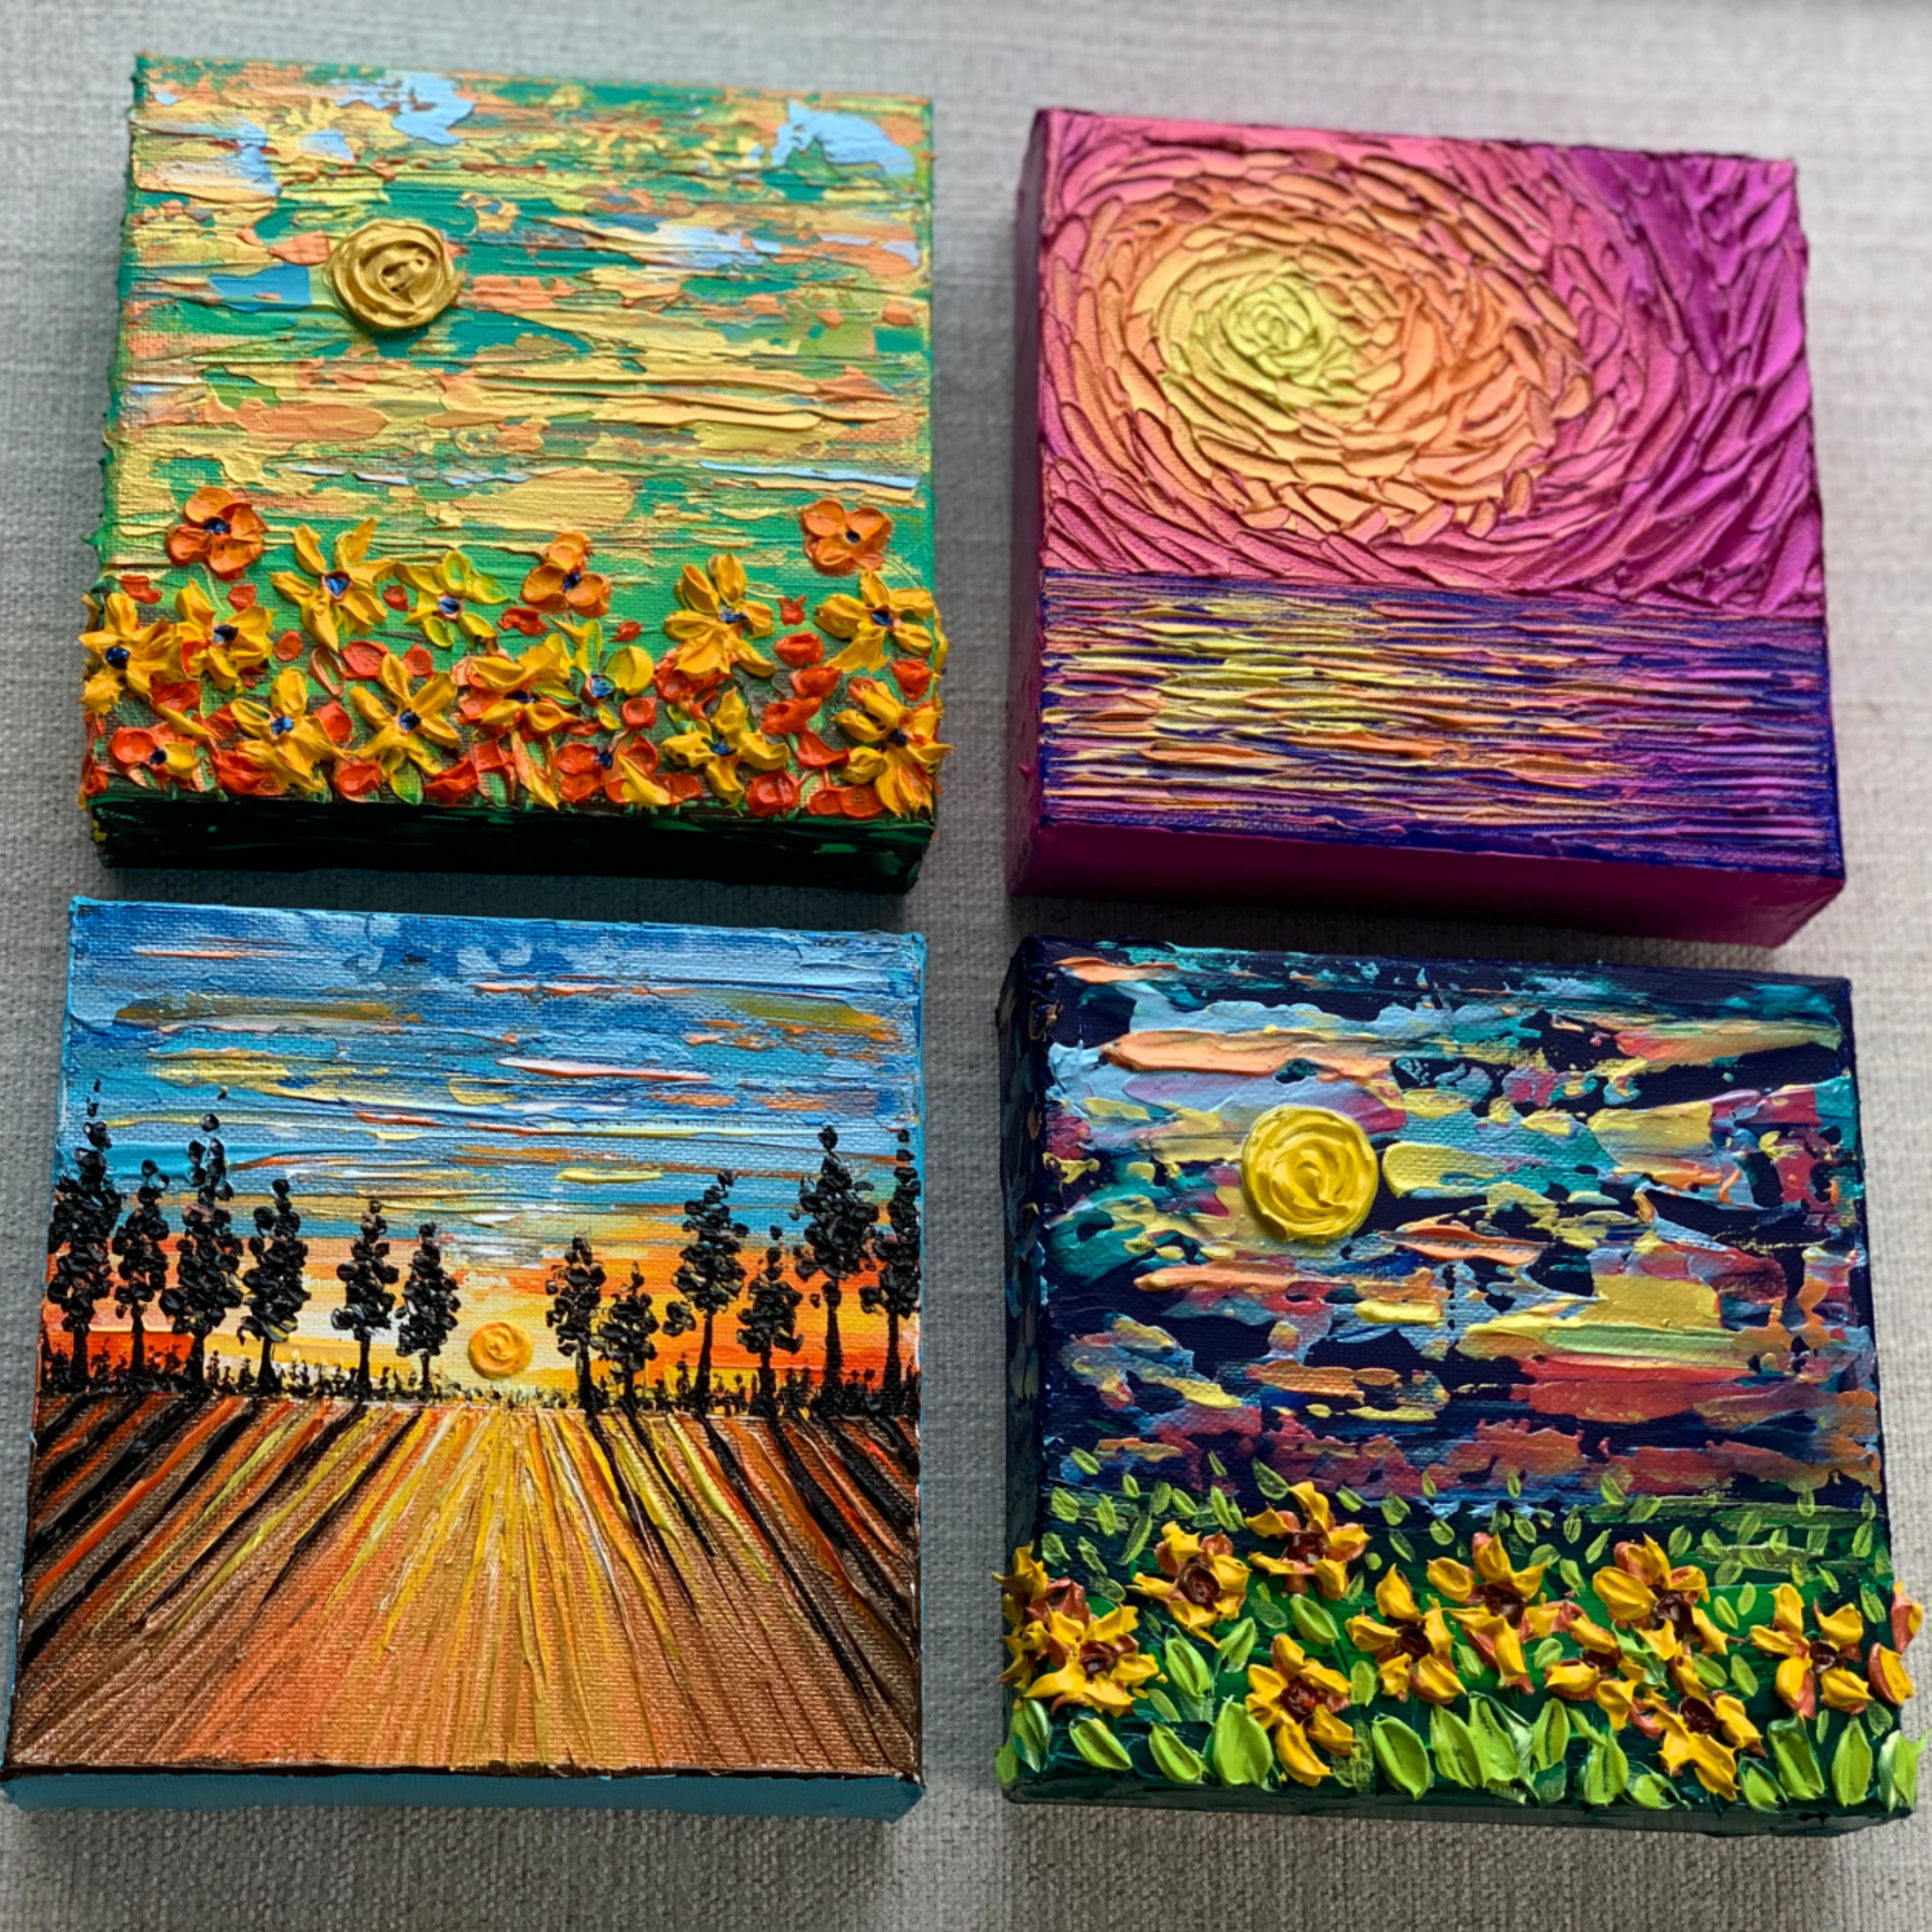 Pin By Emma Pope On Art In 2020 Small Canvas Paintings Modern